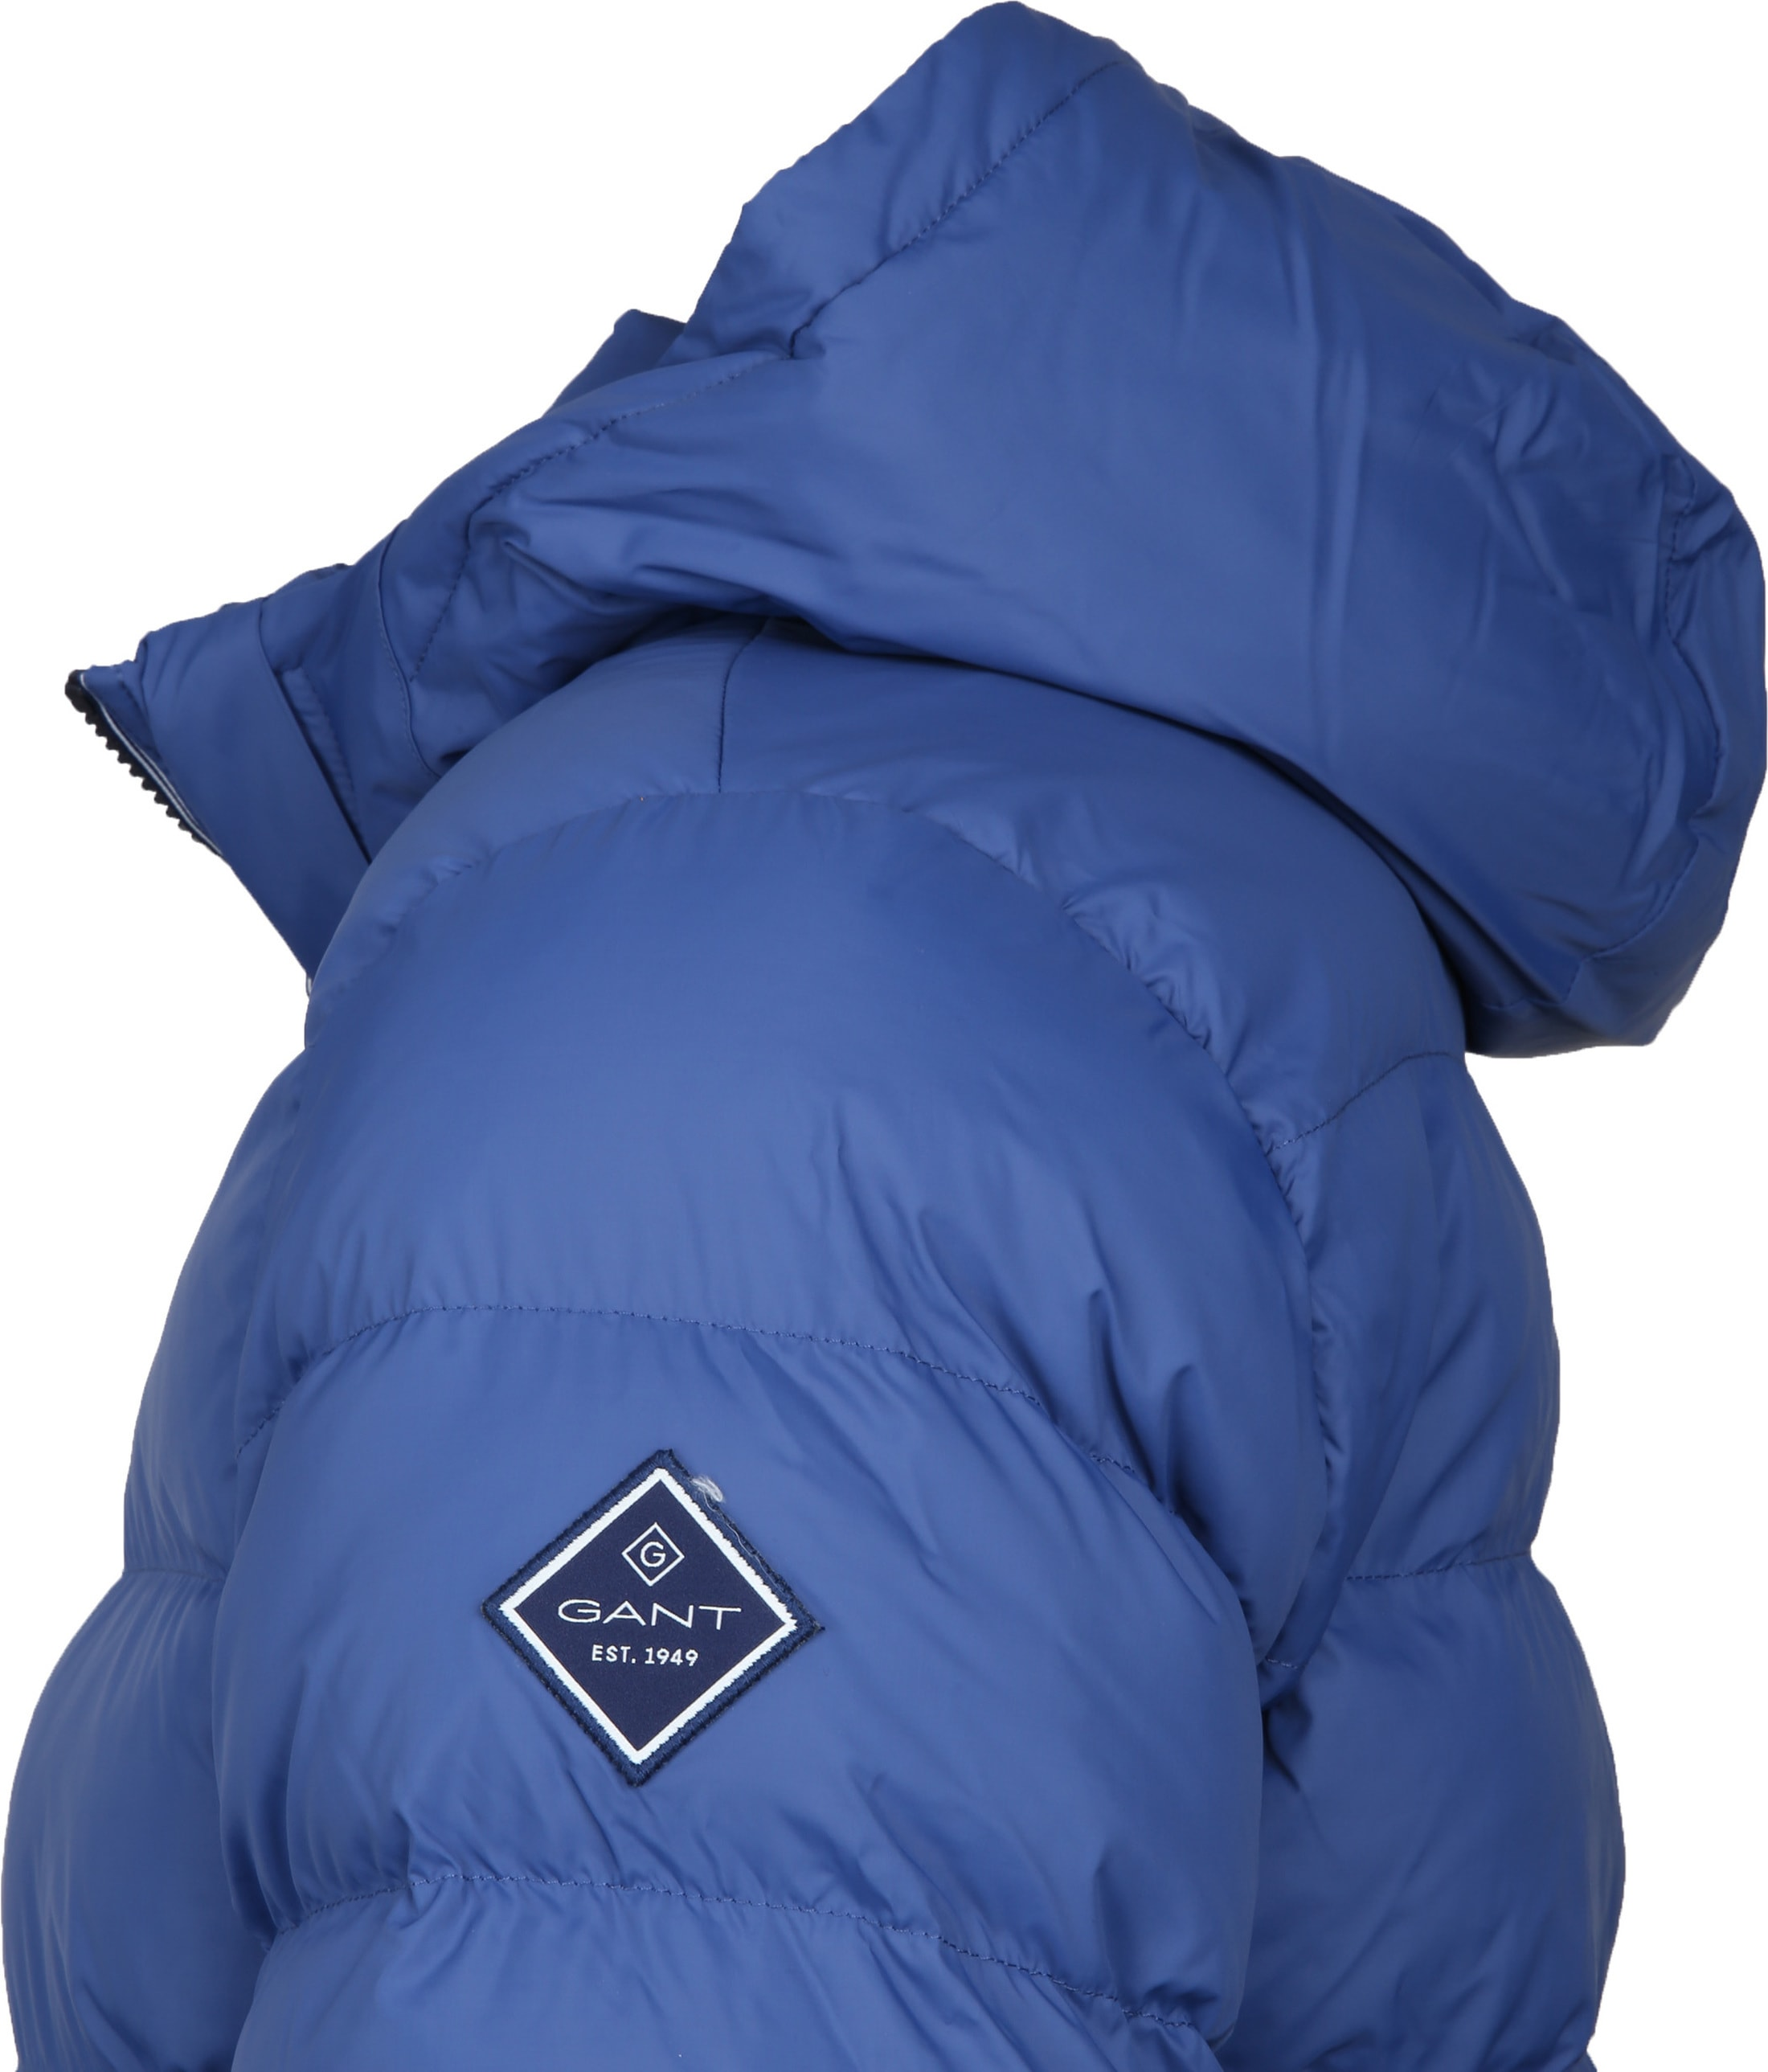 Gant Active Cloud Jacket Blauw foto 4